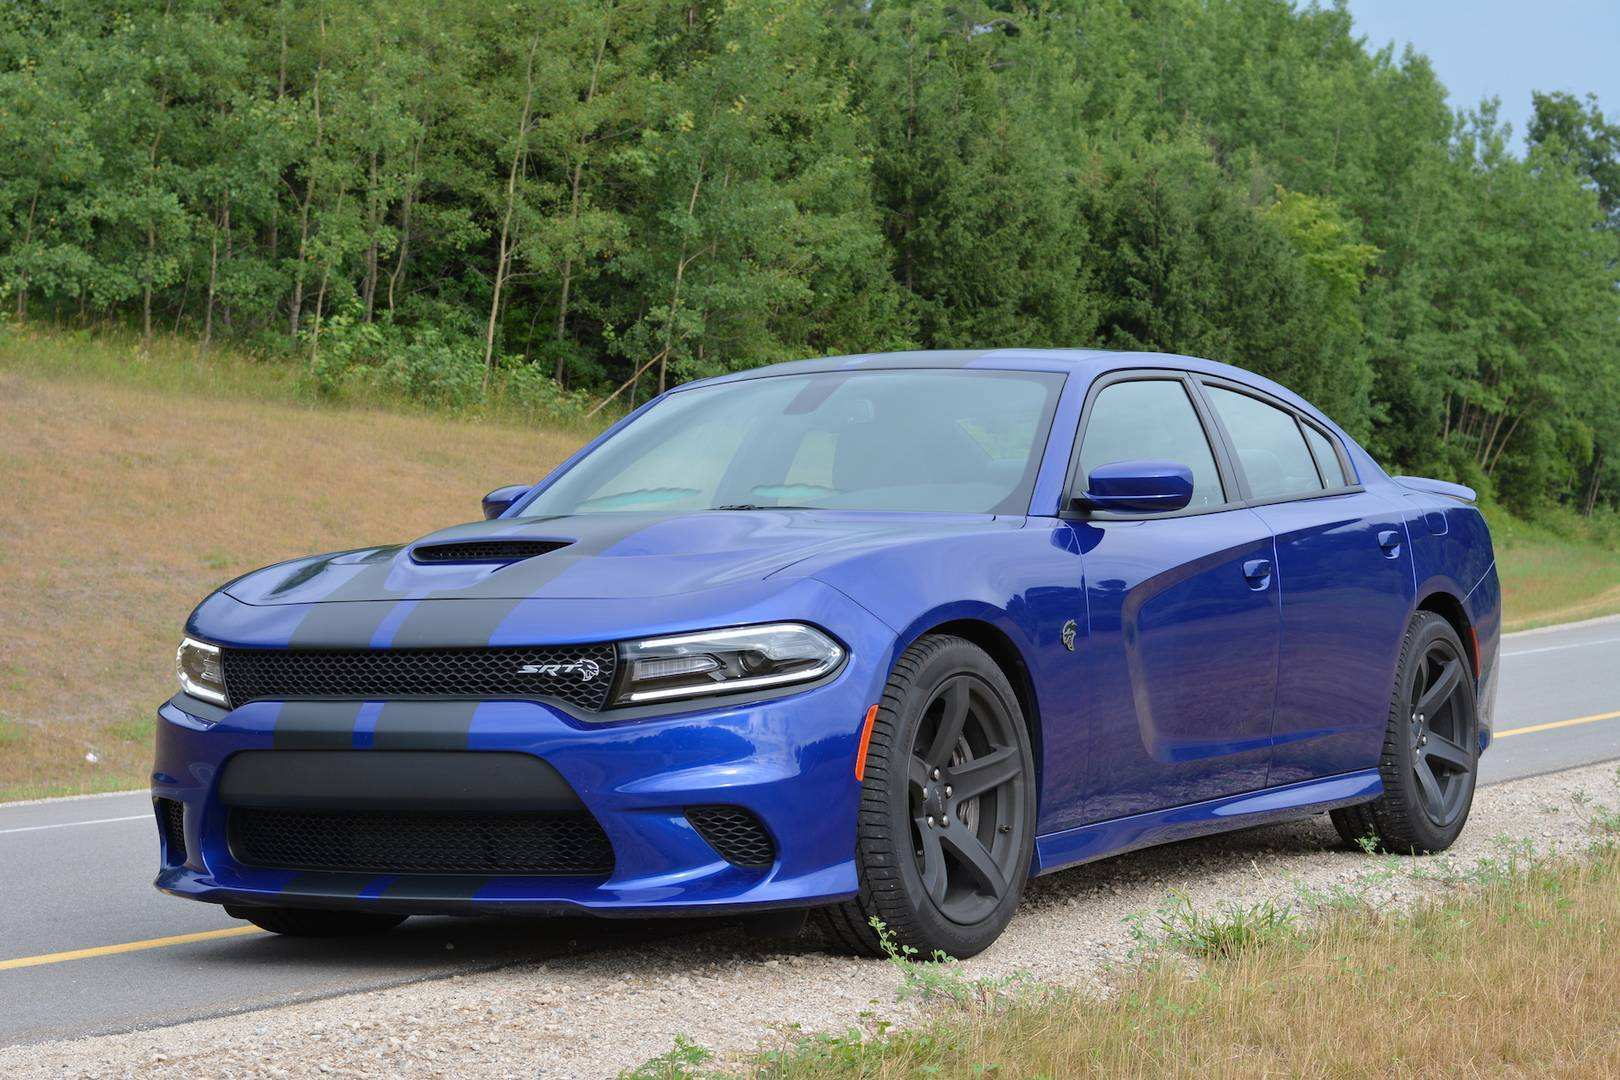 47 All New 2019 Dodge Charger Srt 8 Research New